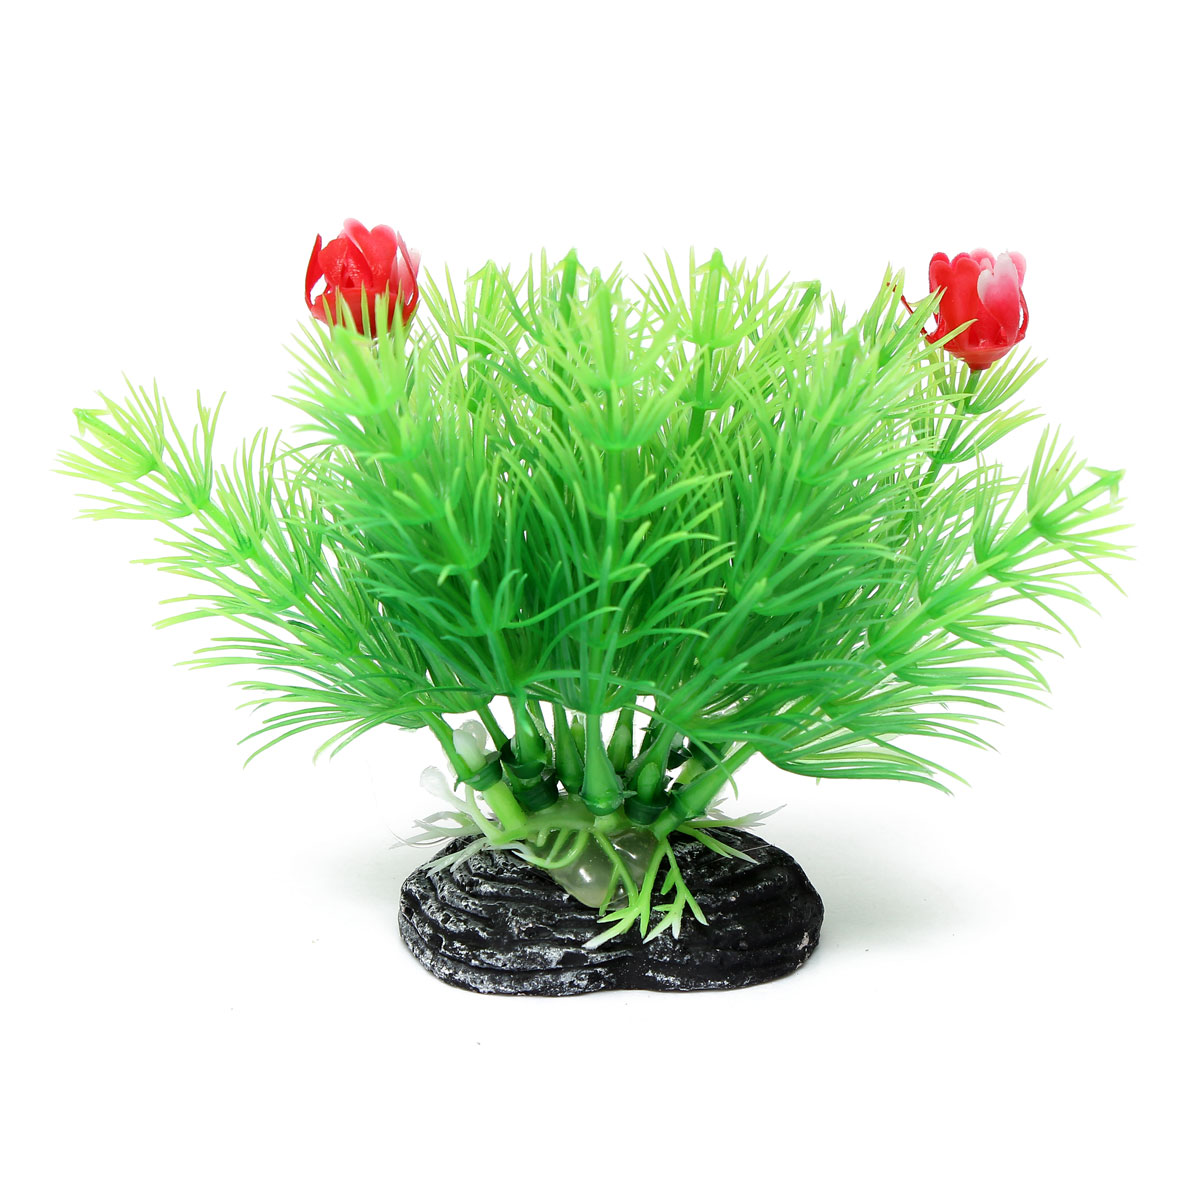 Aquarium fish tank artificial plant grass with two flowers for Artificial fish tank